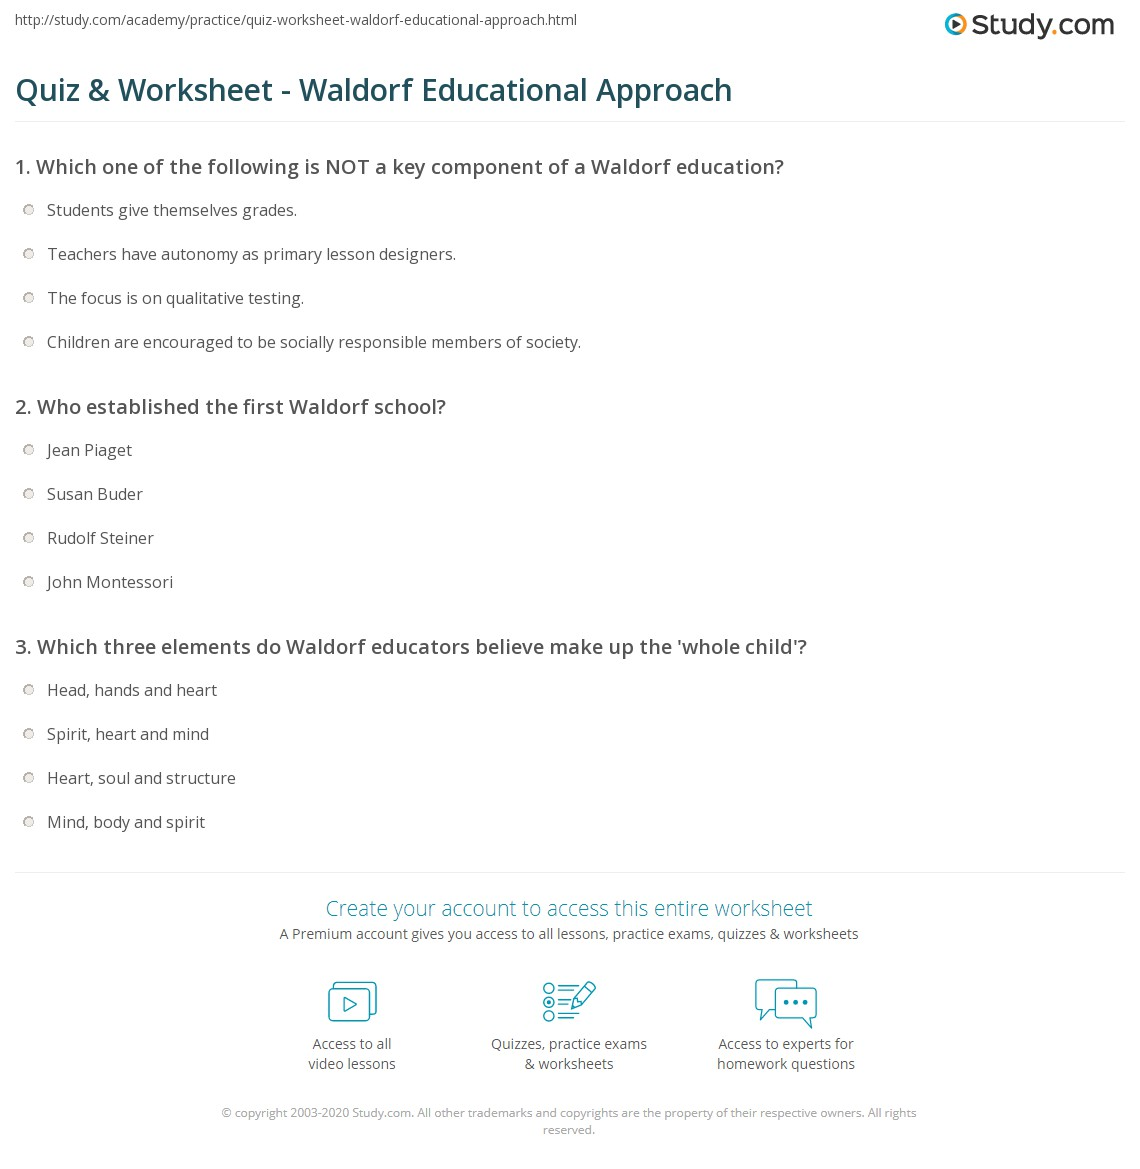 Quiz & Worksheet - Waldorf Educational Approach | Study.com